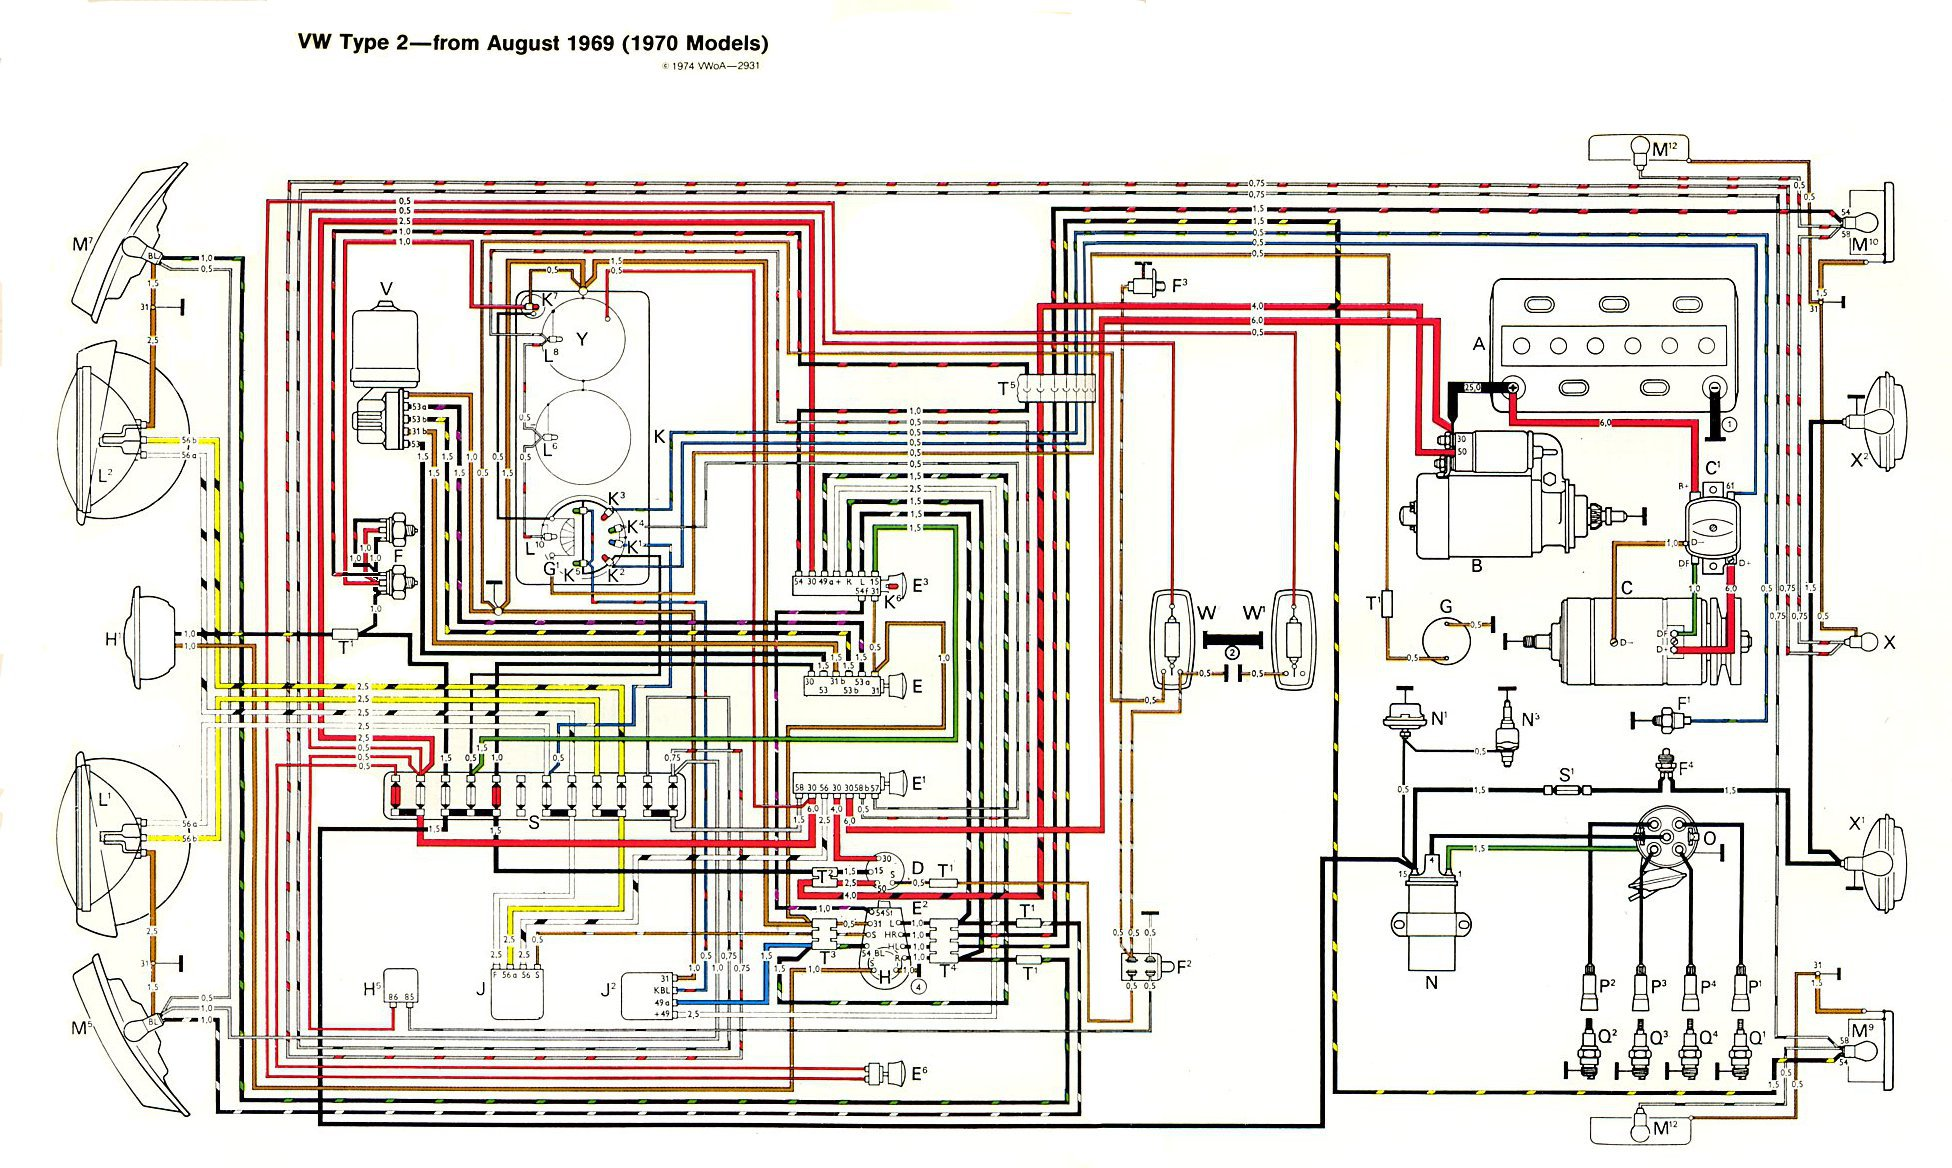 baybus_70 thesamba com type 2 wiring diagrams 1971 vw bus wiring diagram at bakdesigns.co